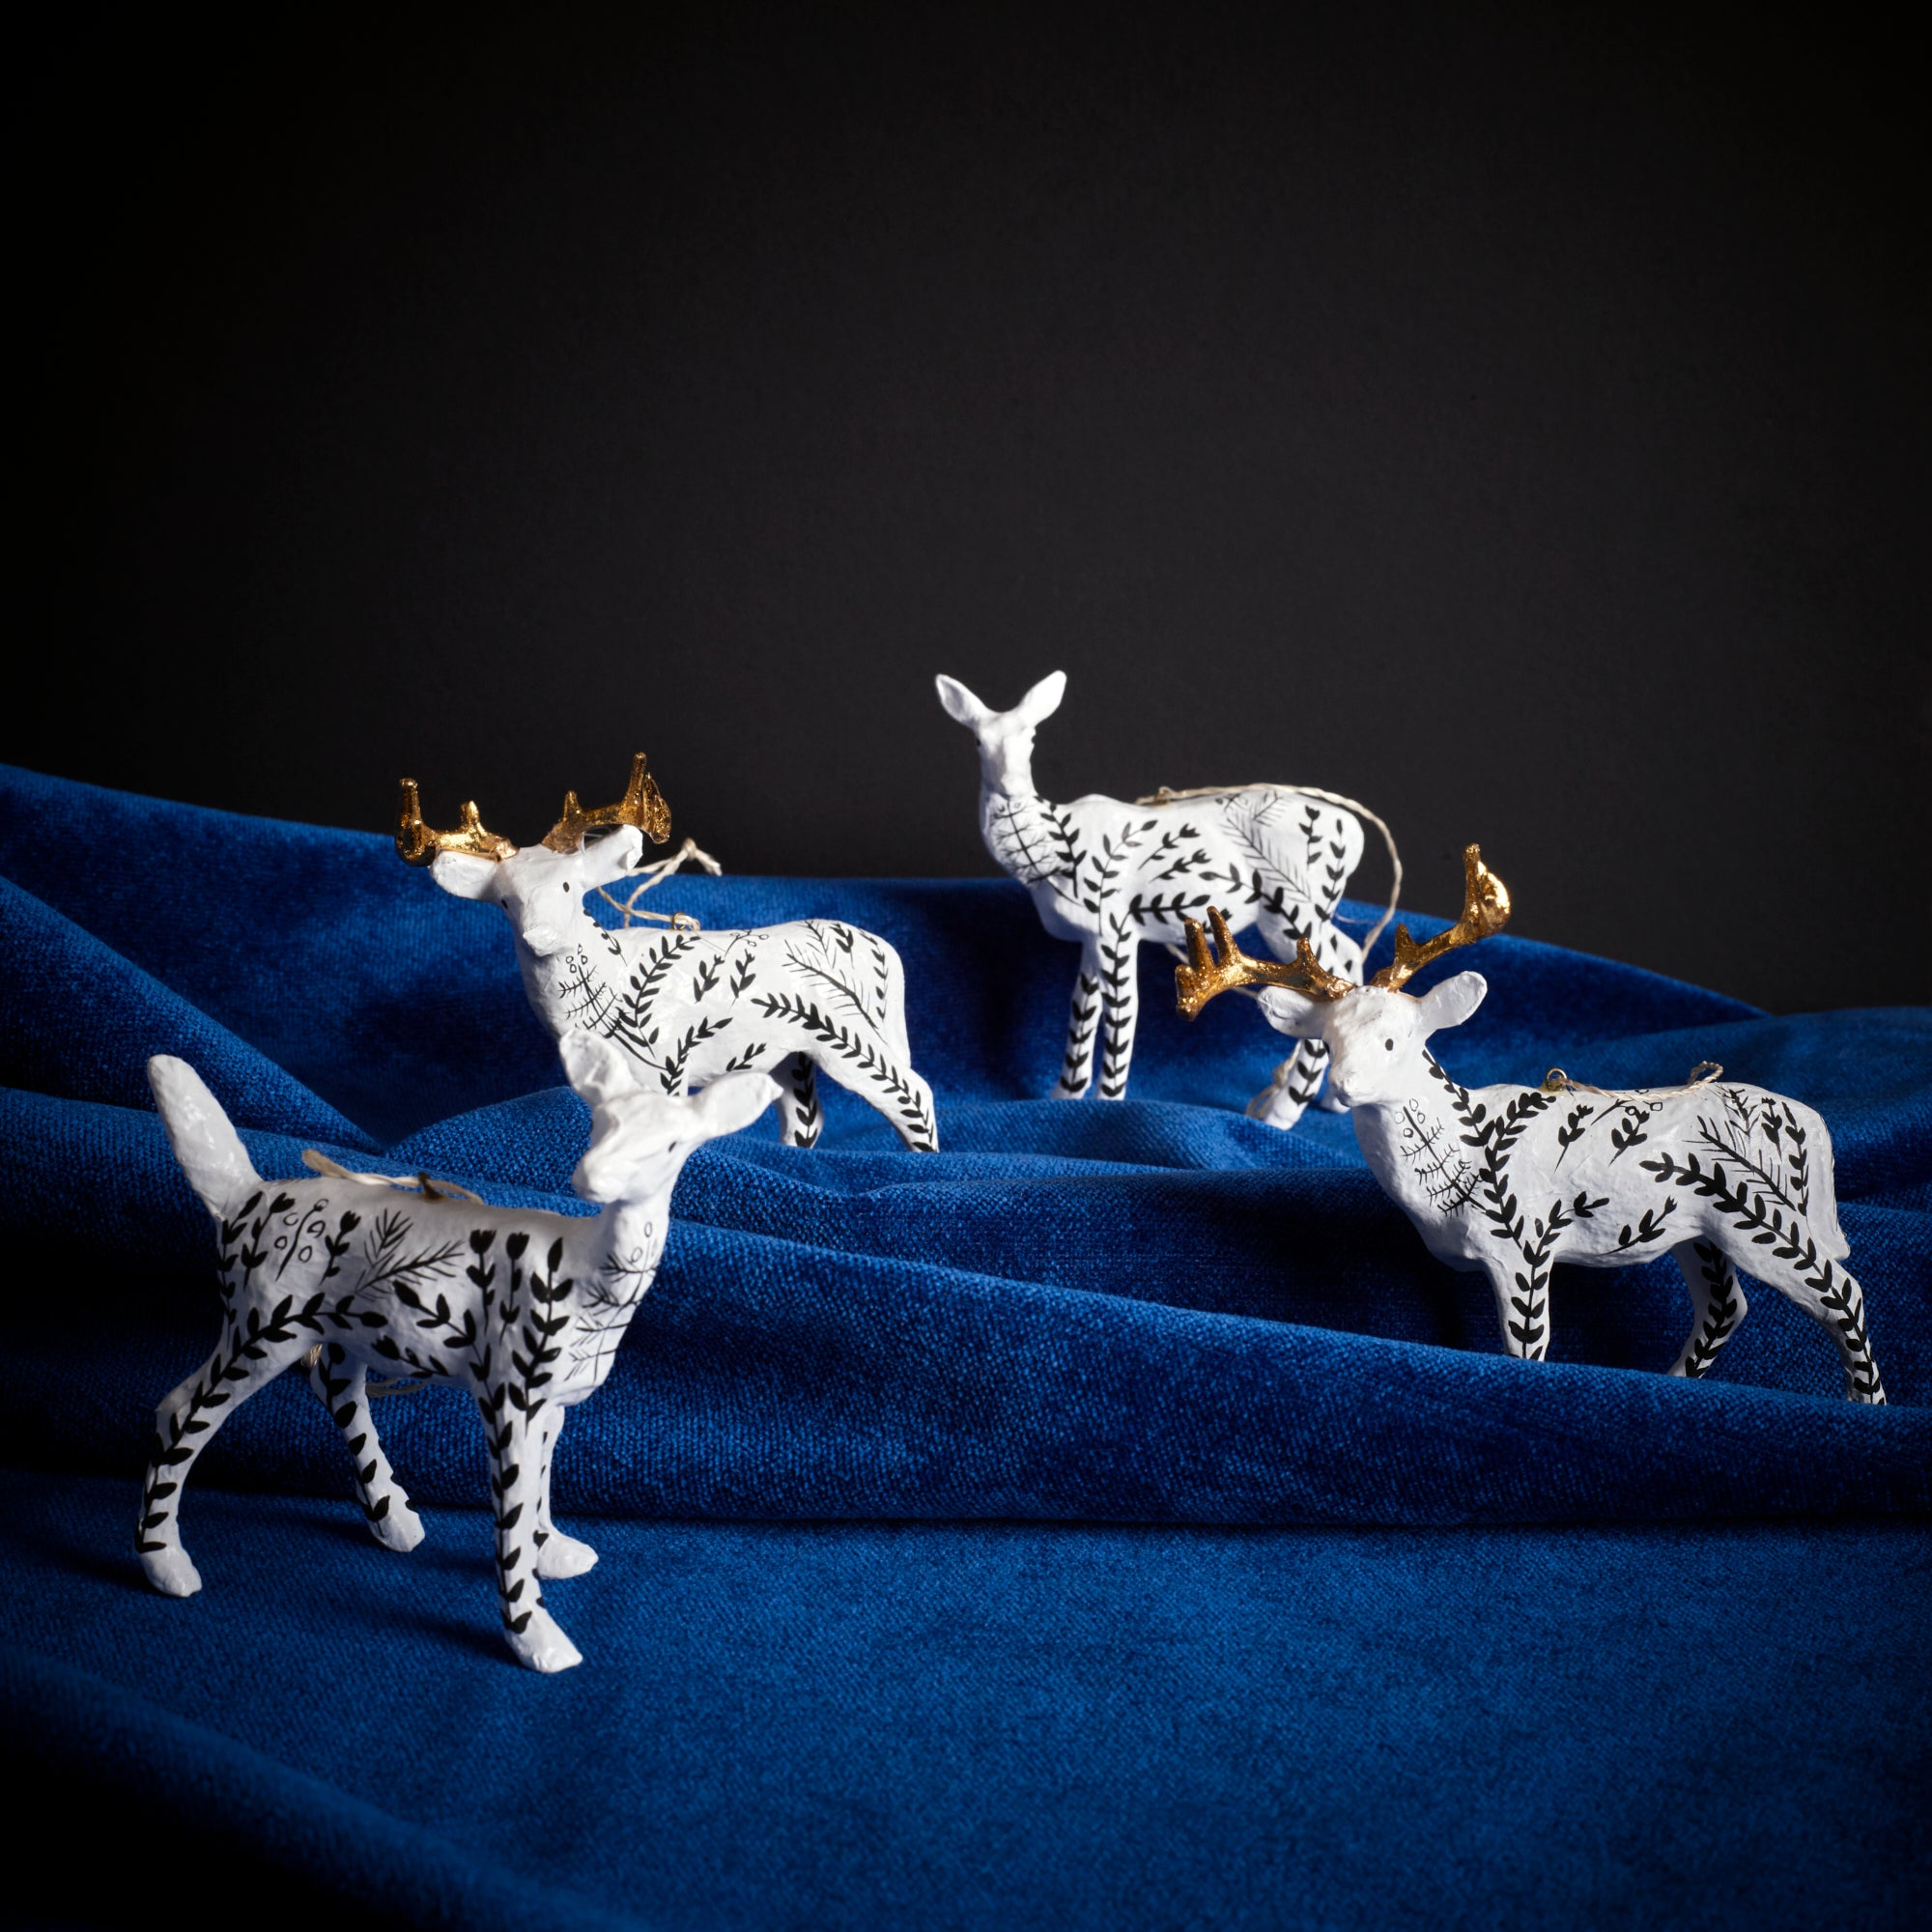 Moonlit Deer Ornament